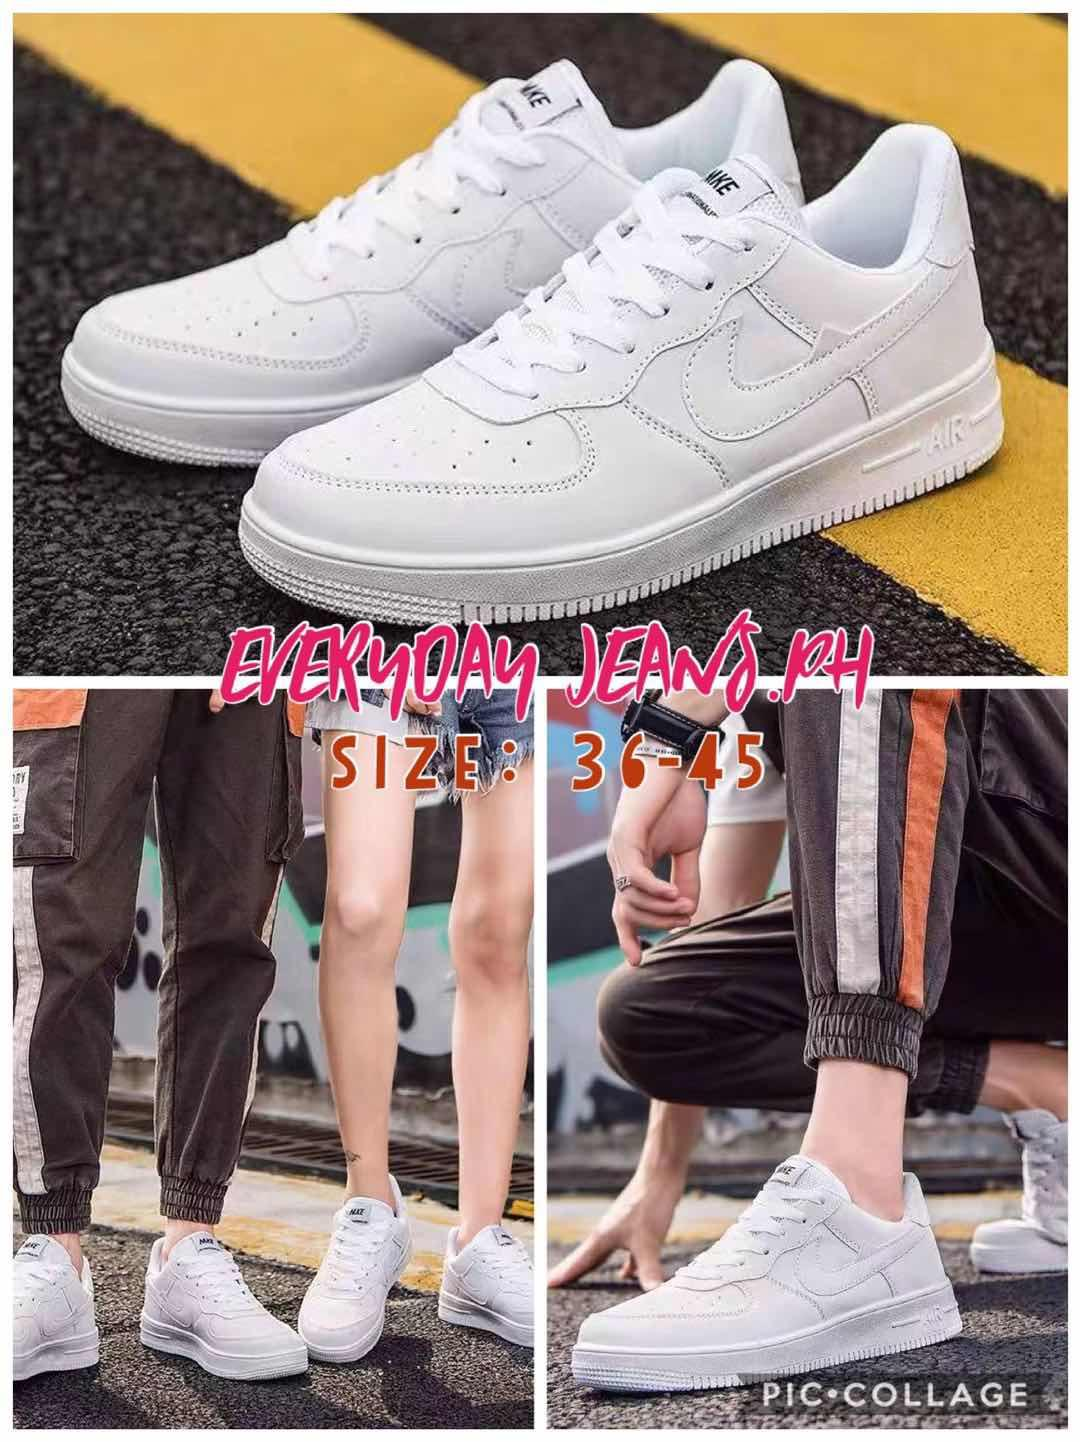 la meilleure attitude 32990 240fe EVERDAY# UNISEX AIR FORCE ONE ALL WHITE SNEAKERS (HOT SALES) SIZES:36-45